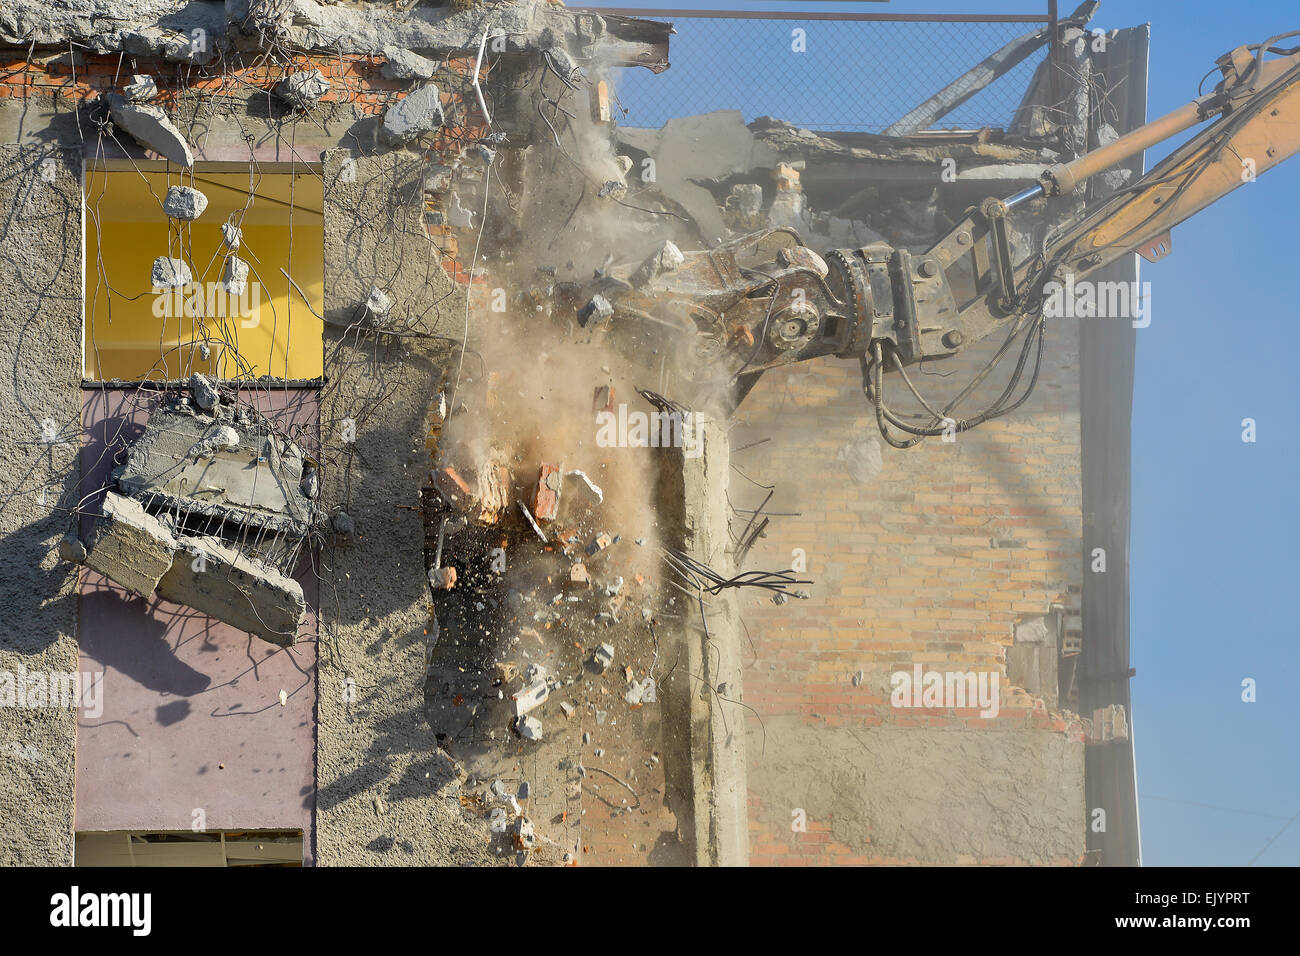 Dismantling of a building - Stock Image